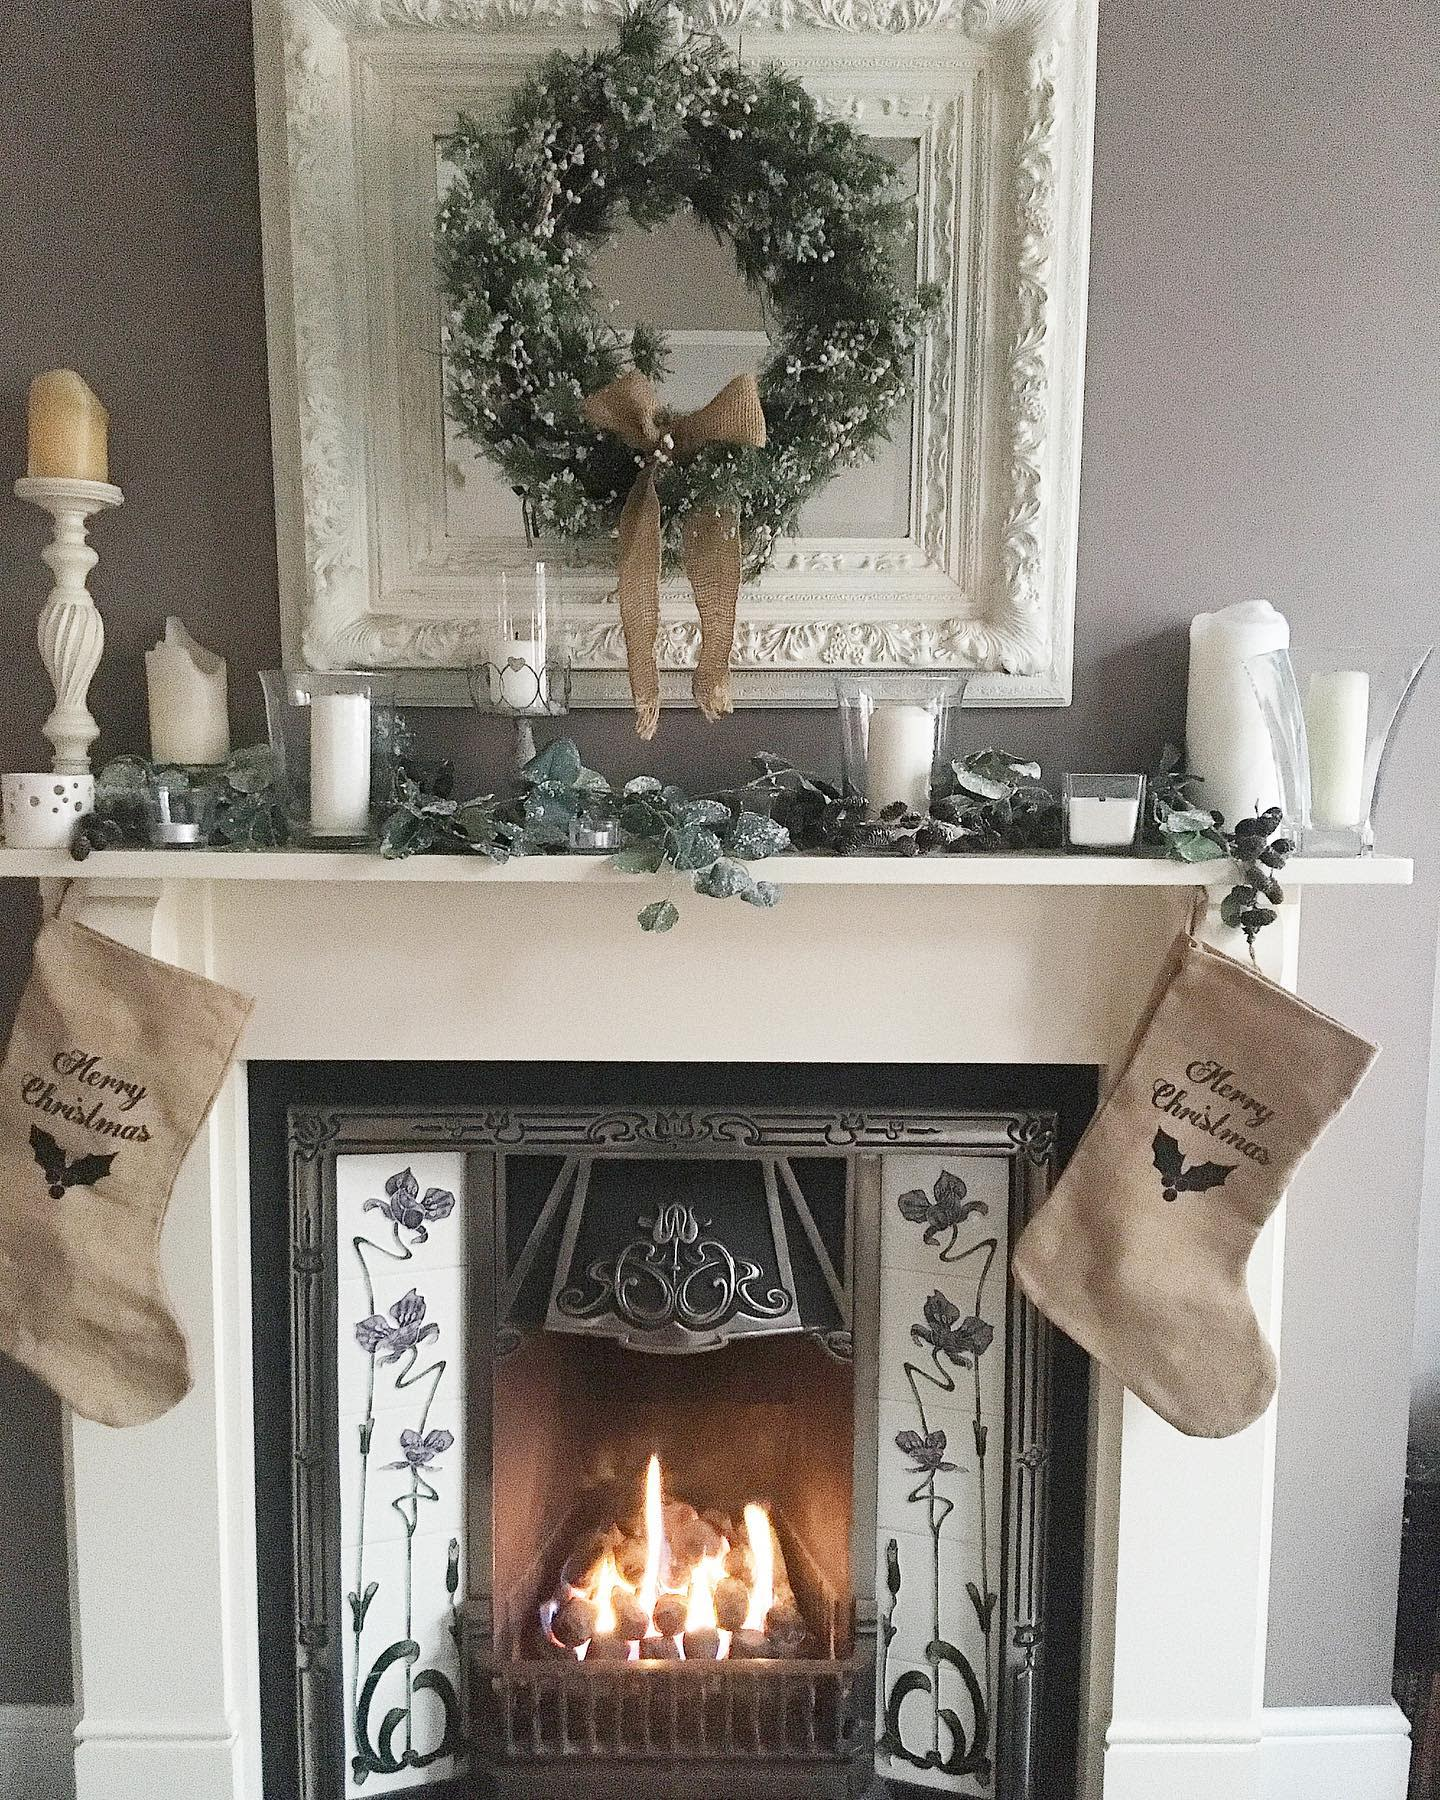 Fireplace Christmas Decorating Ideas -this.oldehouse